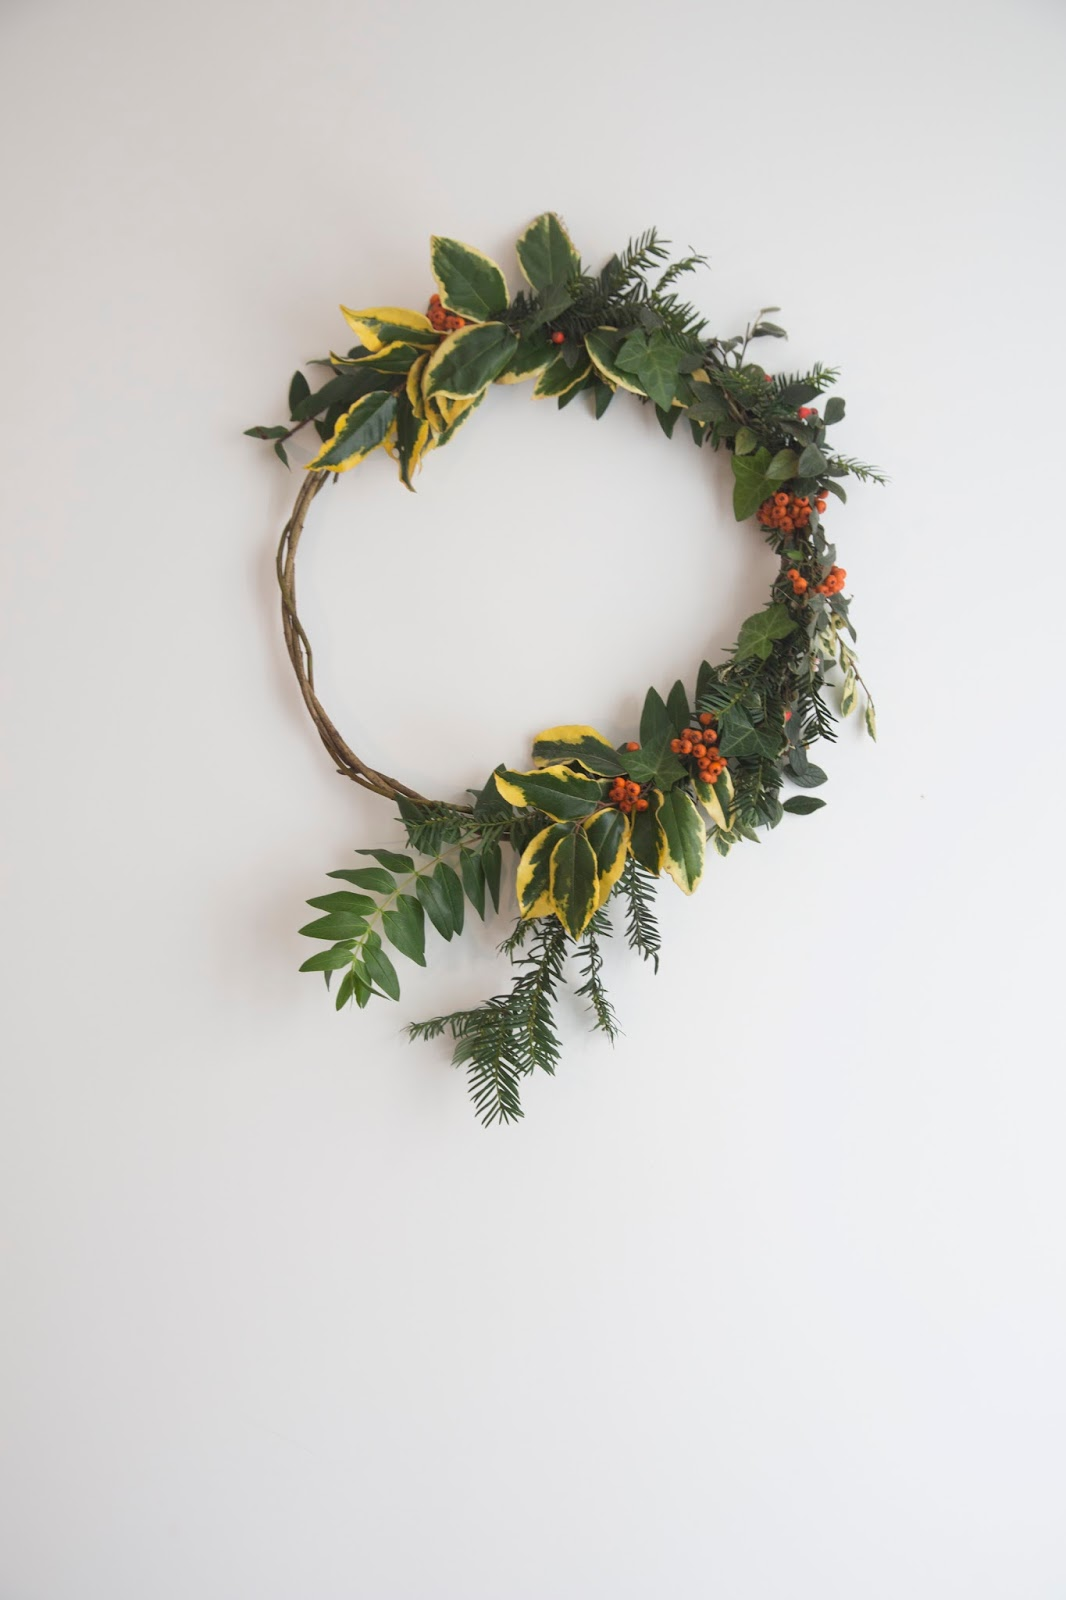 zero waste, zero waste christmas, eco home, ethical home, wreath, hygge, hygge christmas, holiday wreath, christmas wreath, diy wreath, vegan christmas, ethical christmas, sustainable christmas, conscious christmas, christmas, slow christmas, green christmas, ethical holiday, sustainable holiday, vegan holiday,